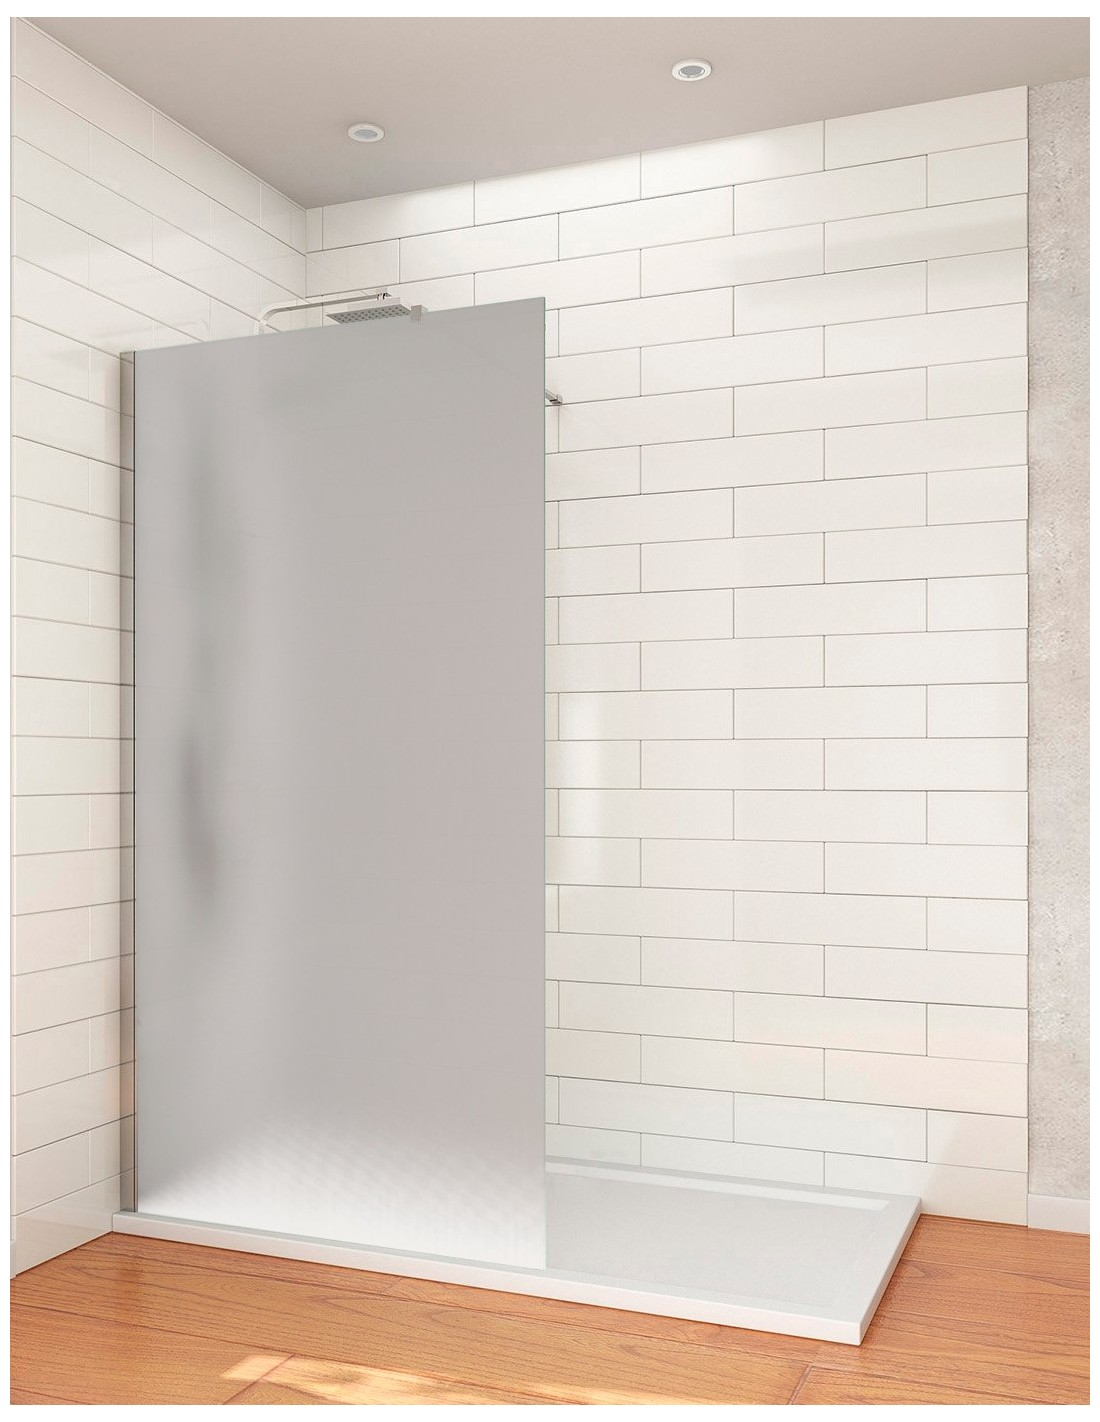 Mampara de ducha cristal fijo Walk-in